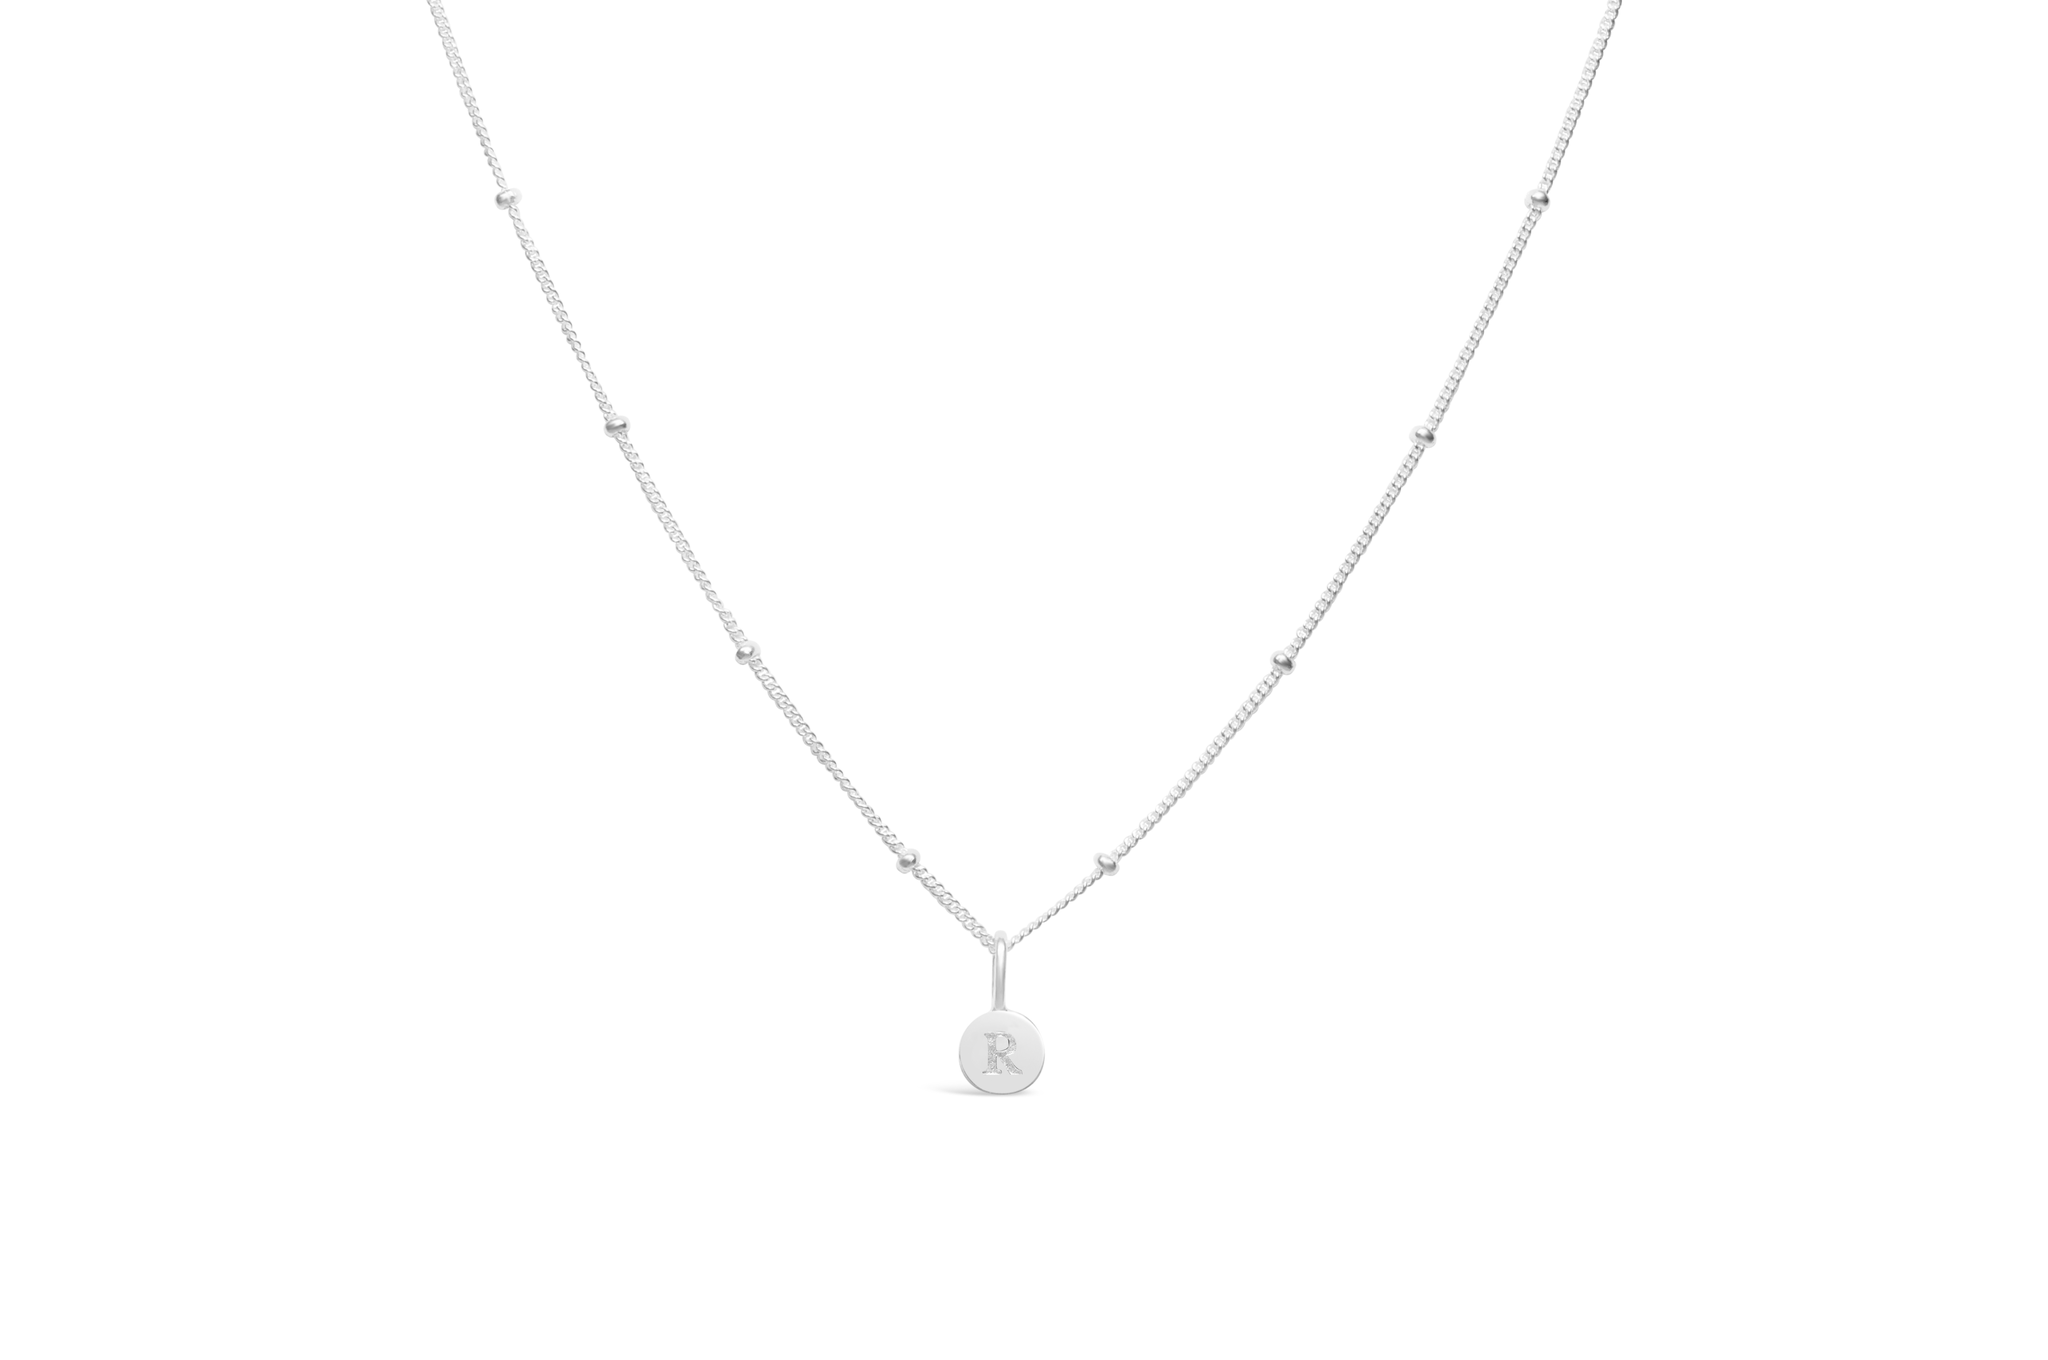 Diamond Cut Love Letter Necklace - R Sterling Silver